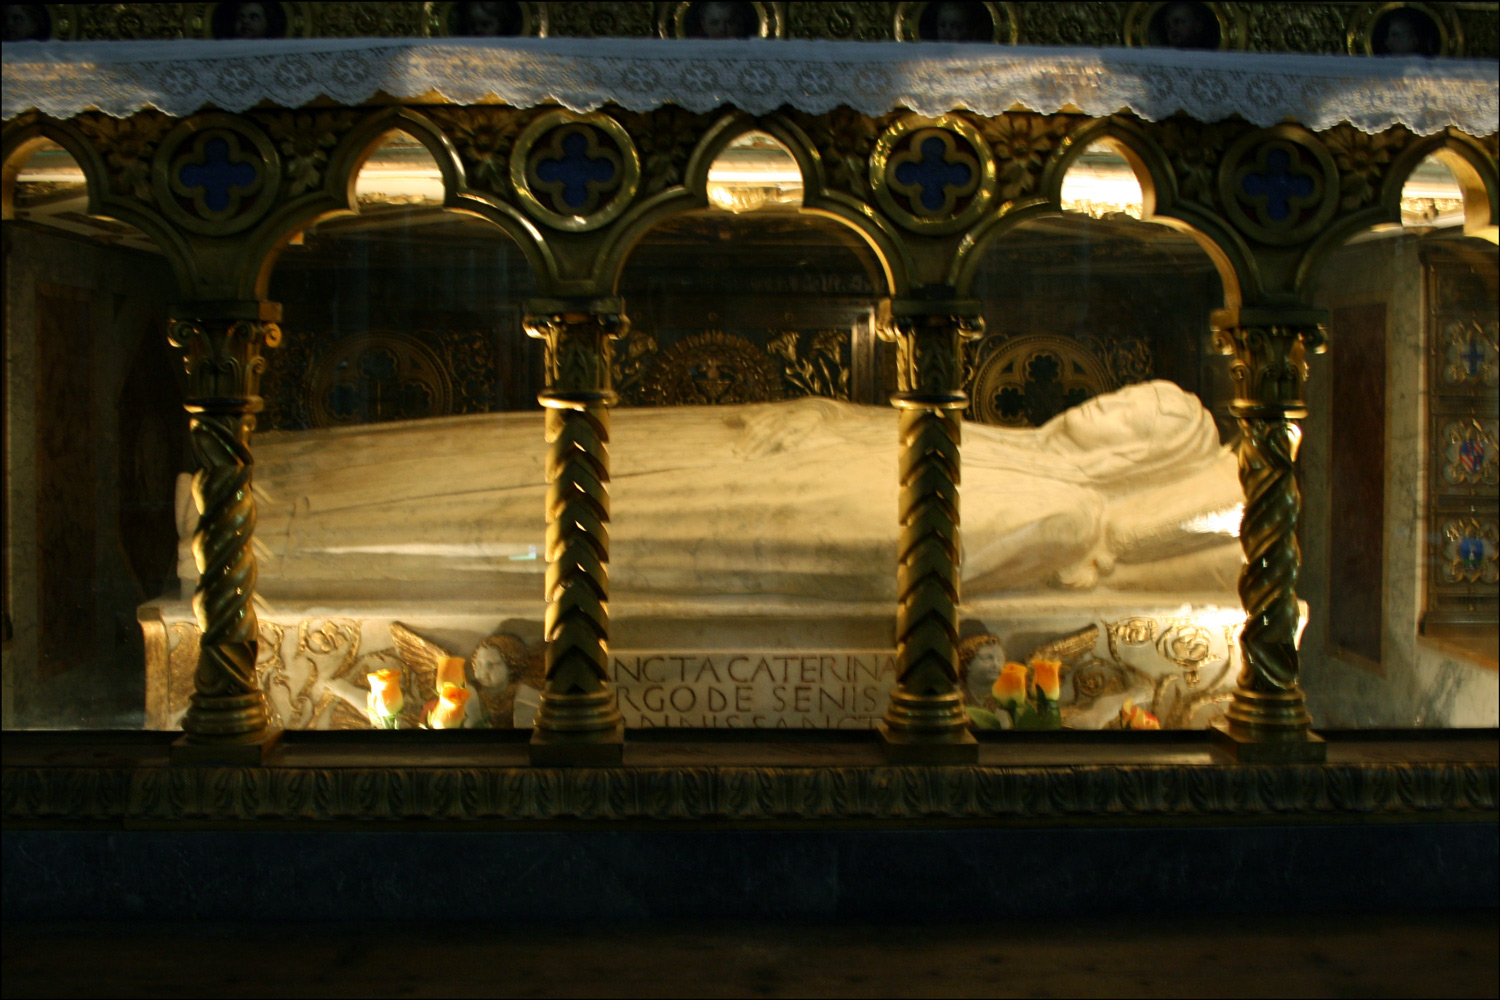 Tomb of Saint Catherine of Siena